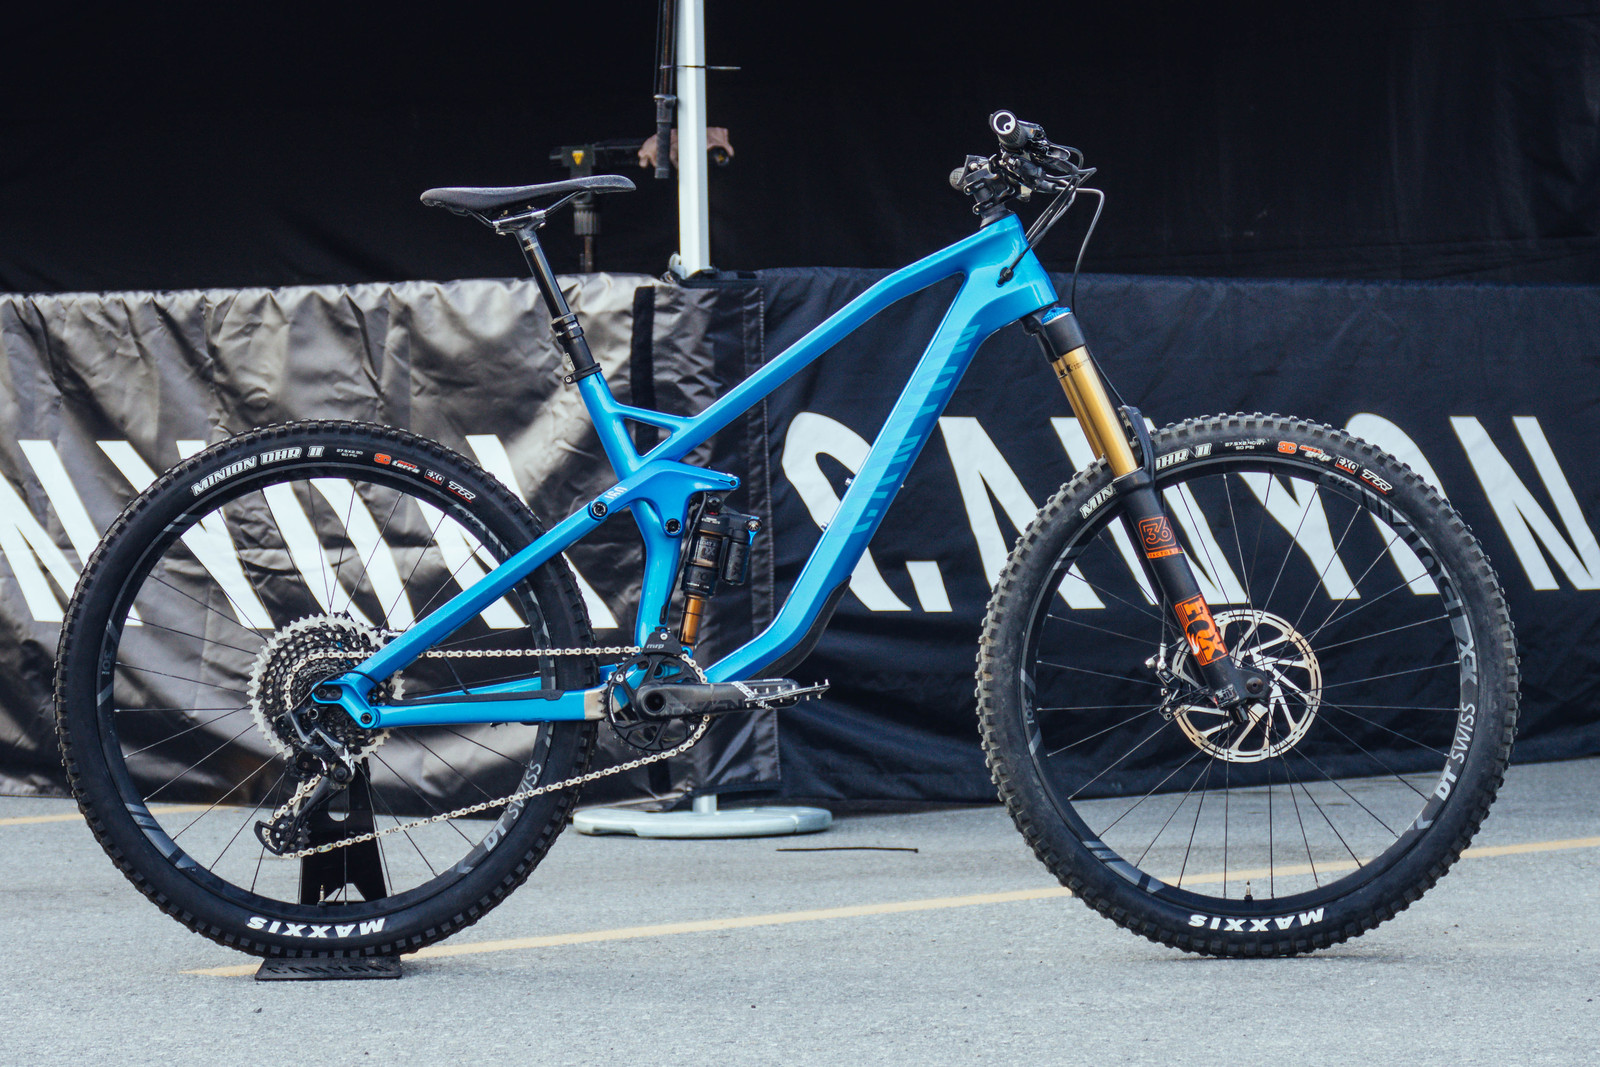 The 160/135mm travel carbon fiber Canyon Strive will start at $3,999 USD. It features Canyon's Shapeshifter technology which quickly changes geometry, travel, and suspension performance with a flip of a lever to suit your terrain.